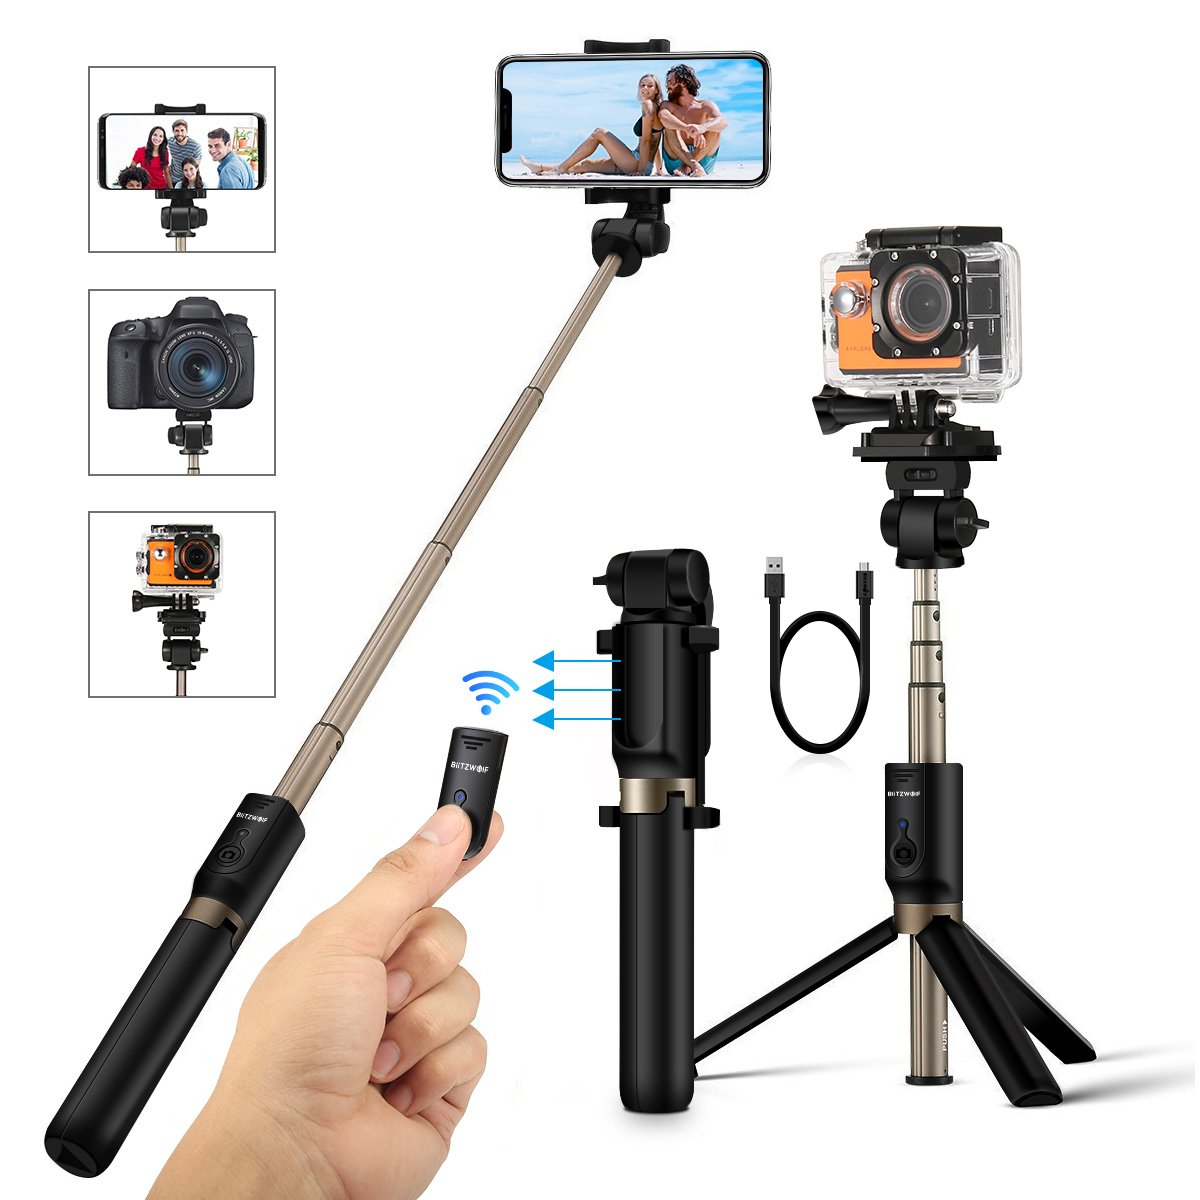 Selfie Stick Tripod with Remote and 1/4 Camera Mount Holder for Gopro Camera iPhone X 8 7 7plus 6s 6 5s Android Samsung 3.5-6 inch Smartphone - BlitzWolf 4 in 1 Extendable Monopod Mini Pocket Wireless Selfie Stick 360 ° Rotation Best Gifts